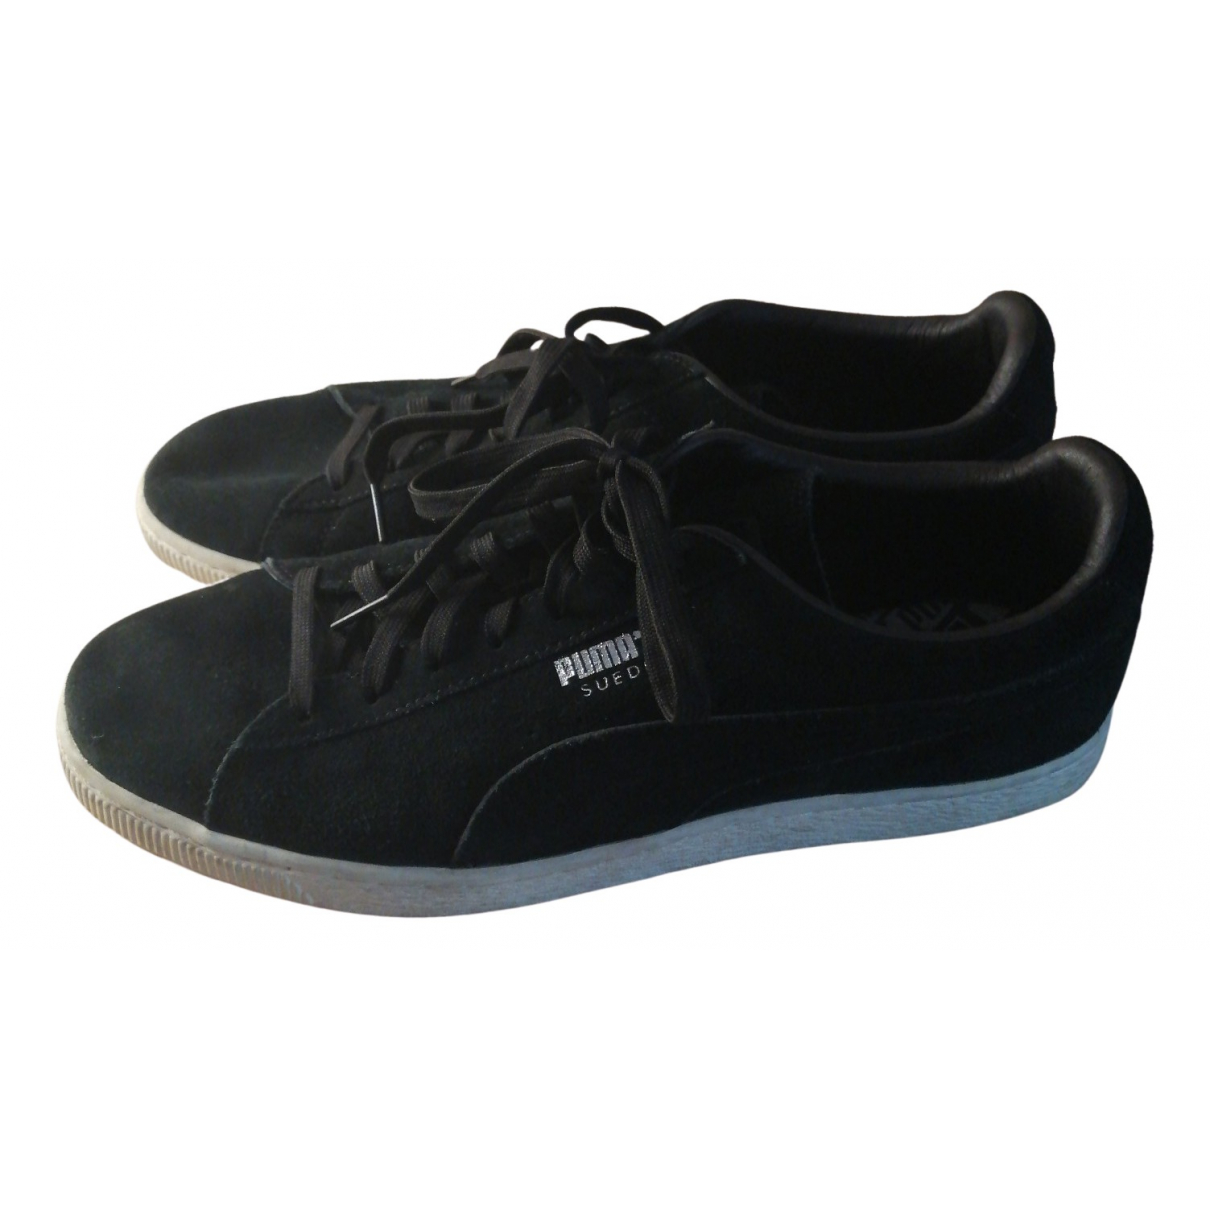 Puma N Black Suede Trainers for Men 44.5 EU